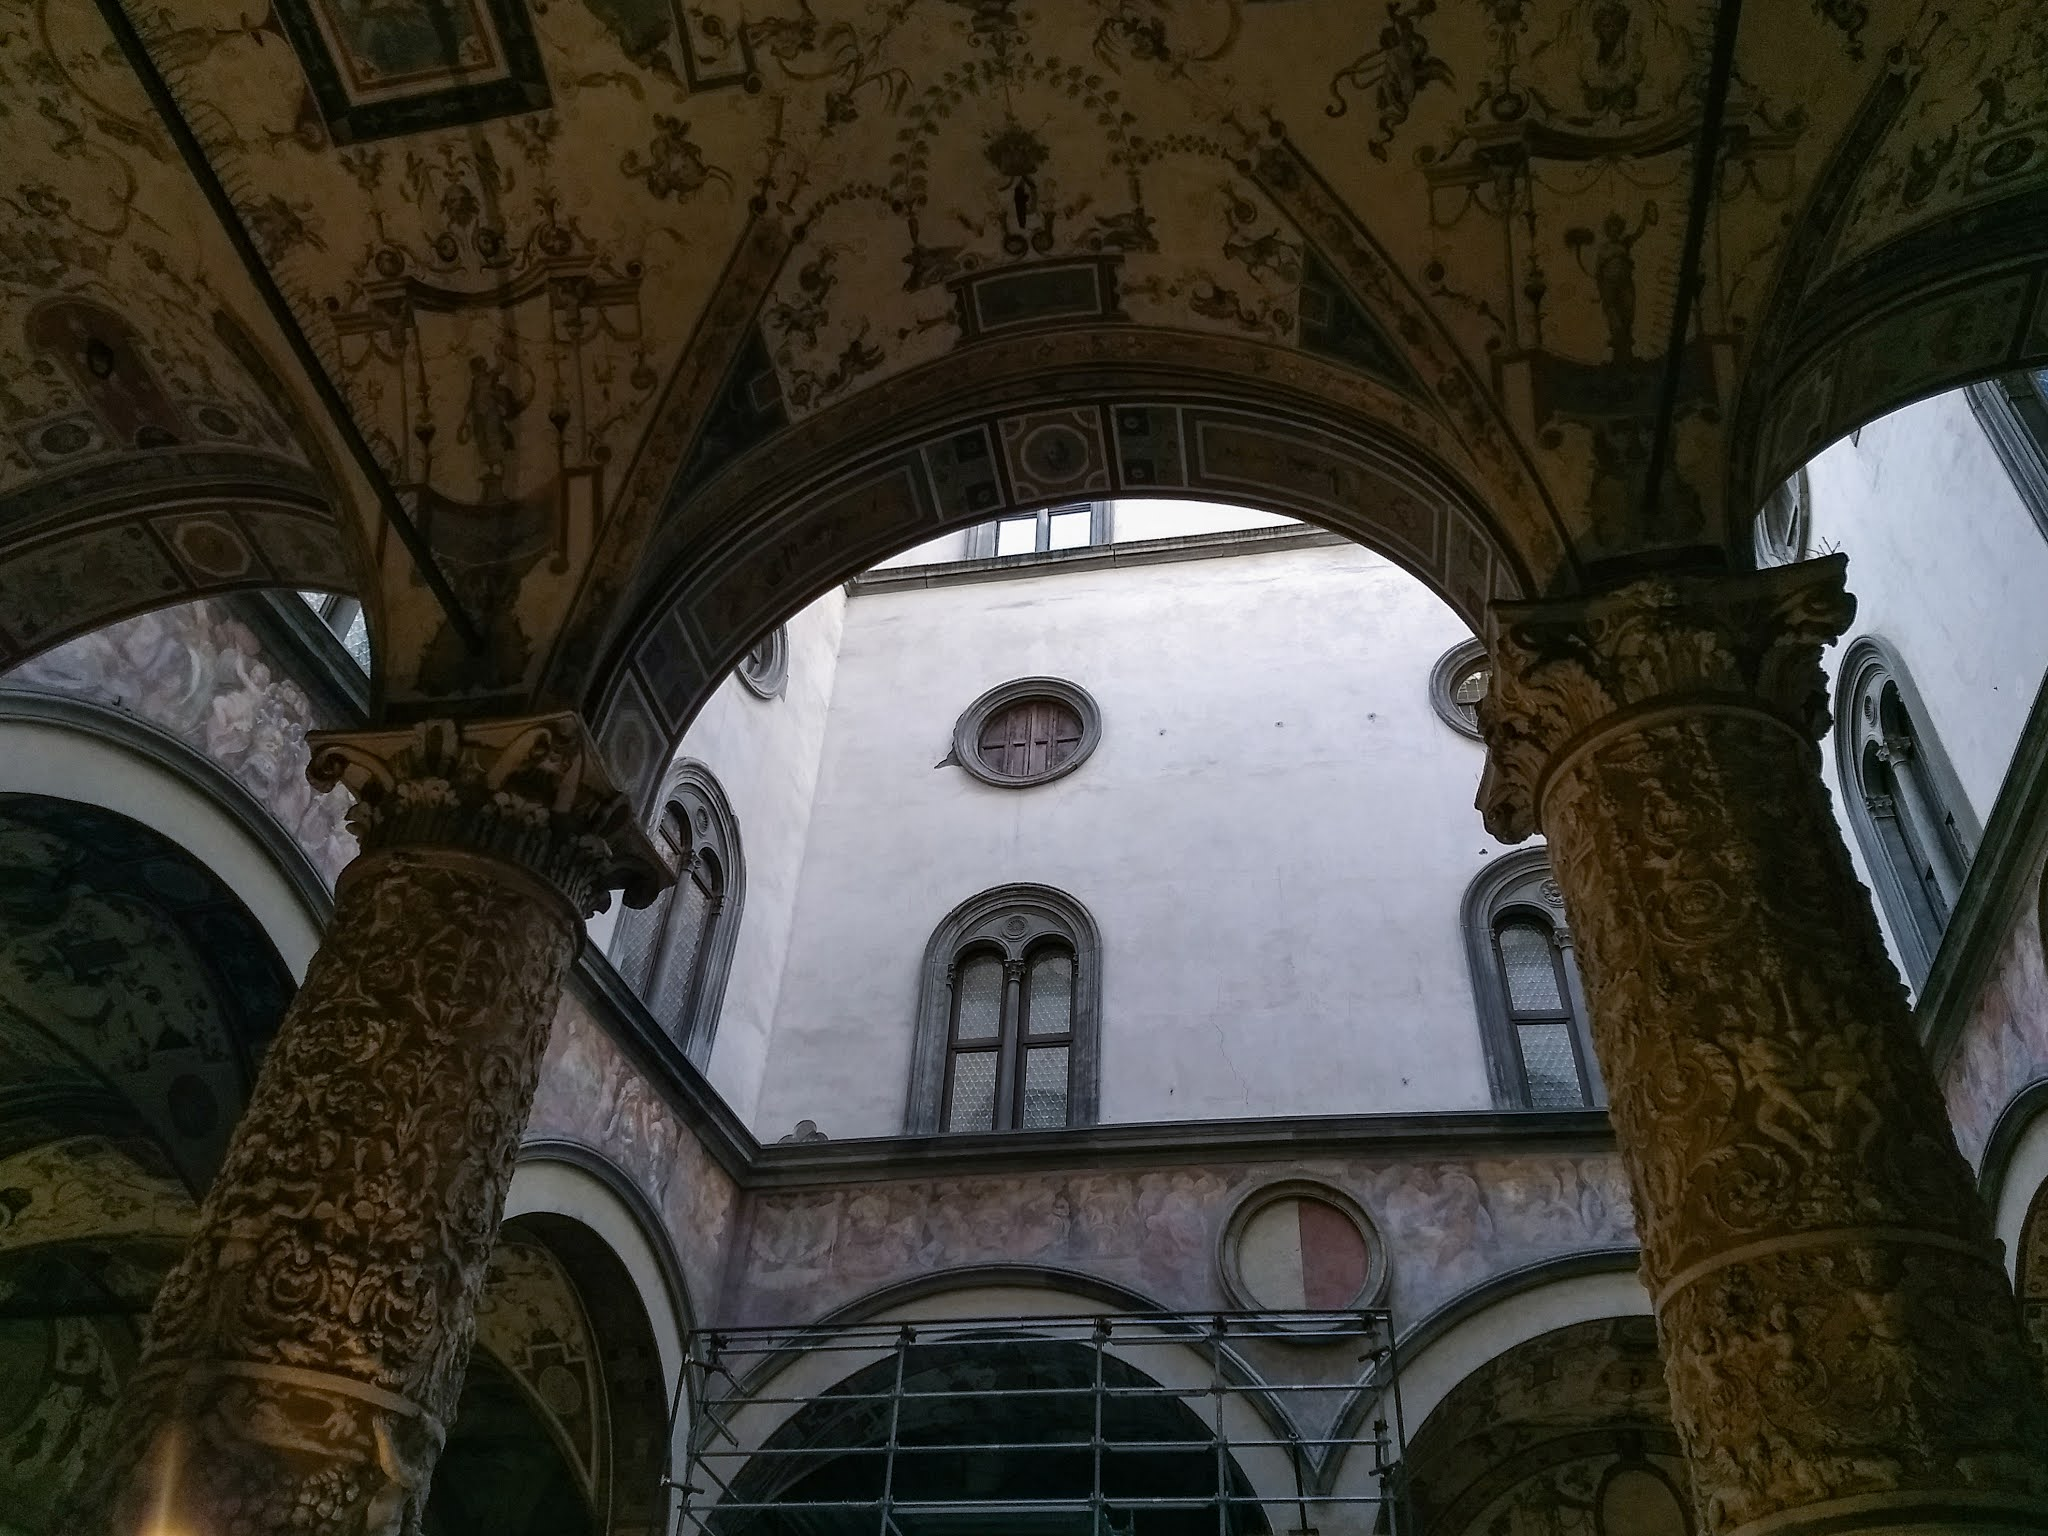 Archways inside the Palazzo Vecchio in Florence.